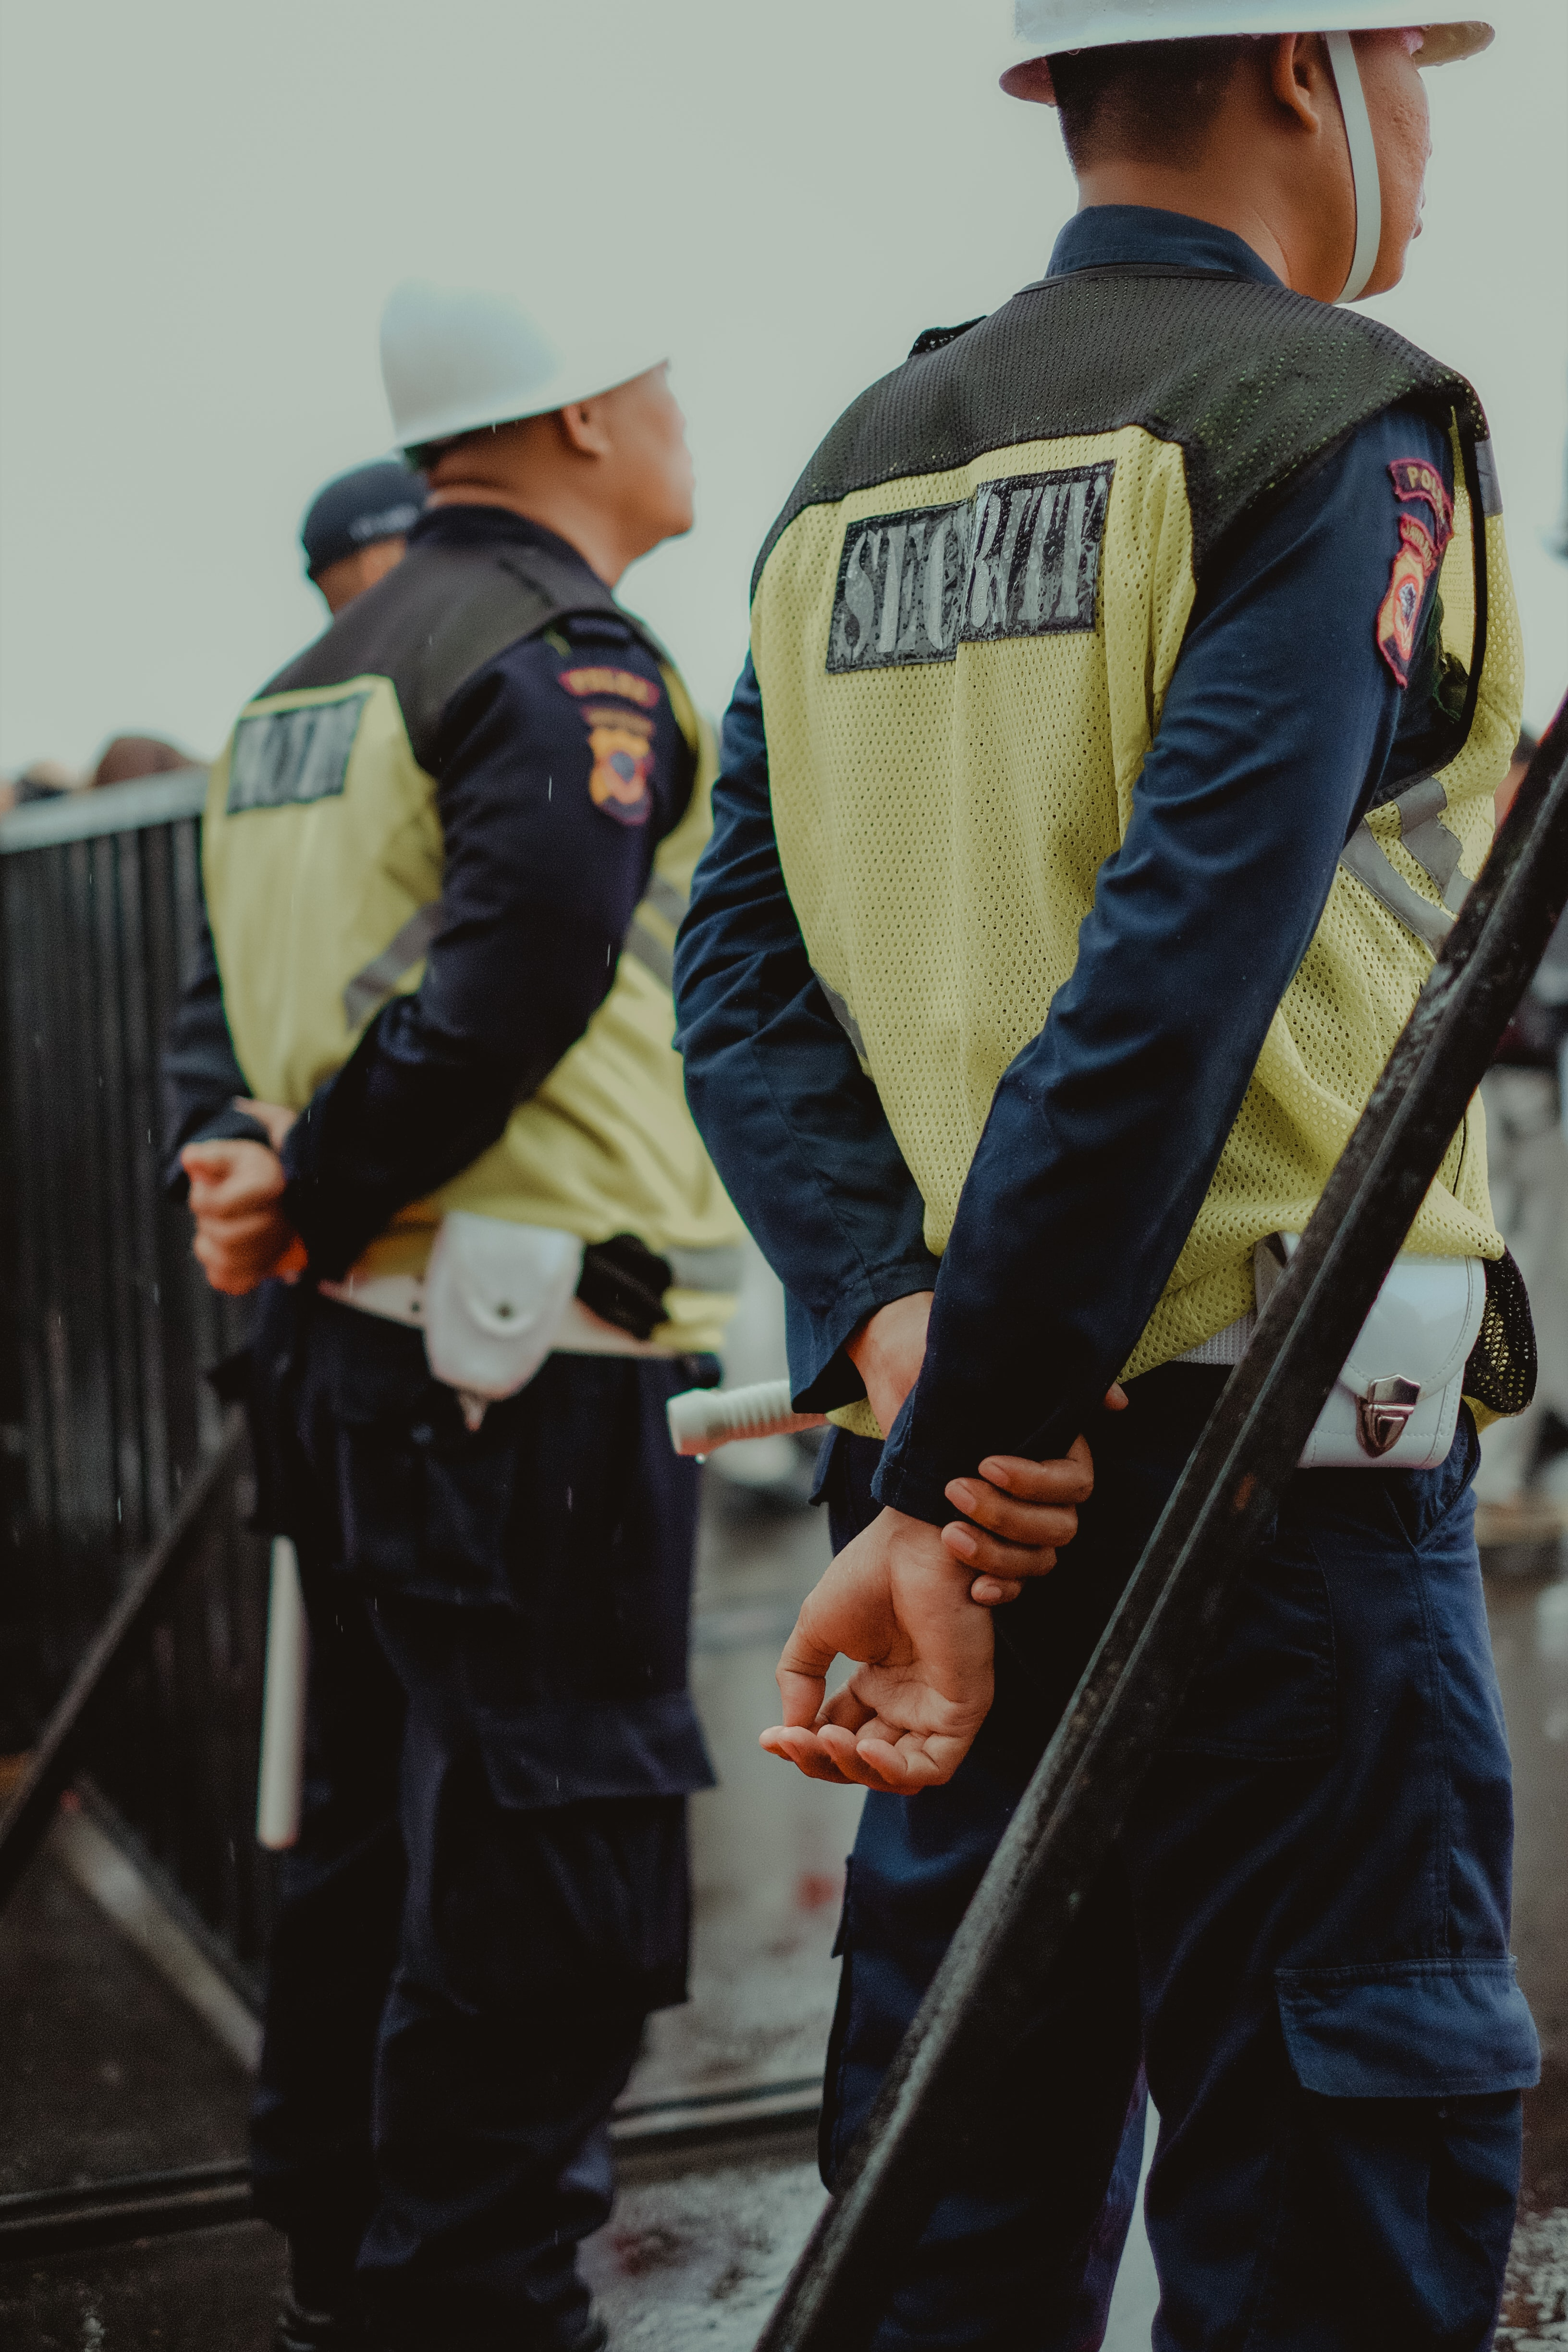 policeman standing near black steel fence